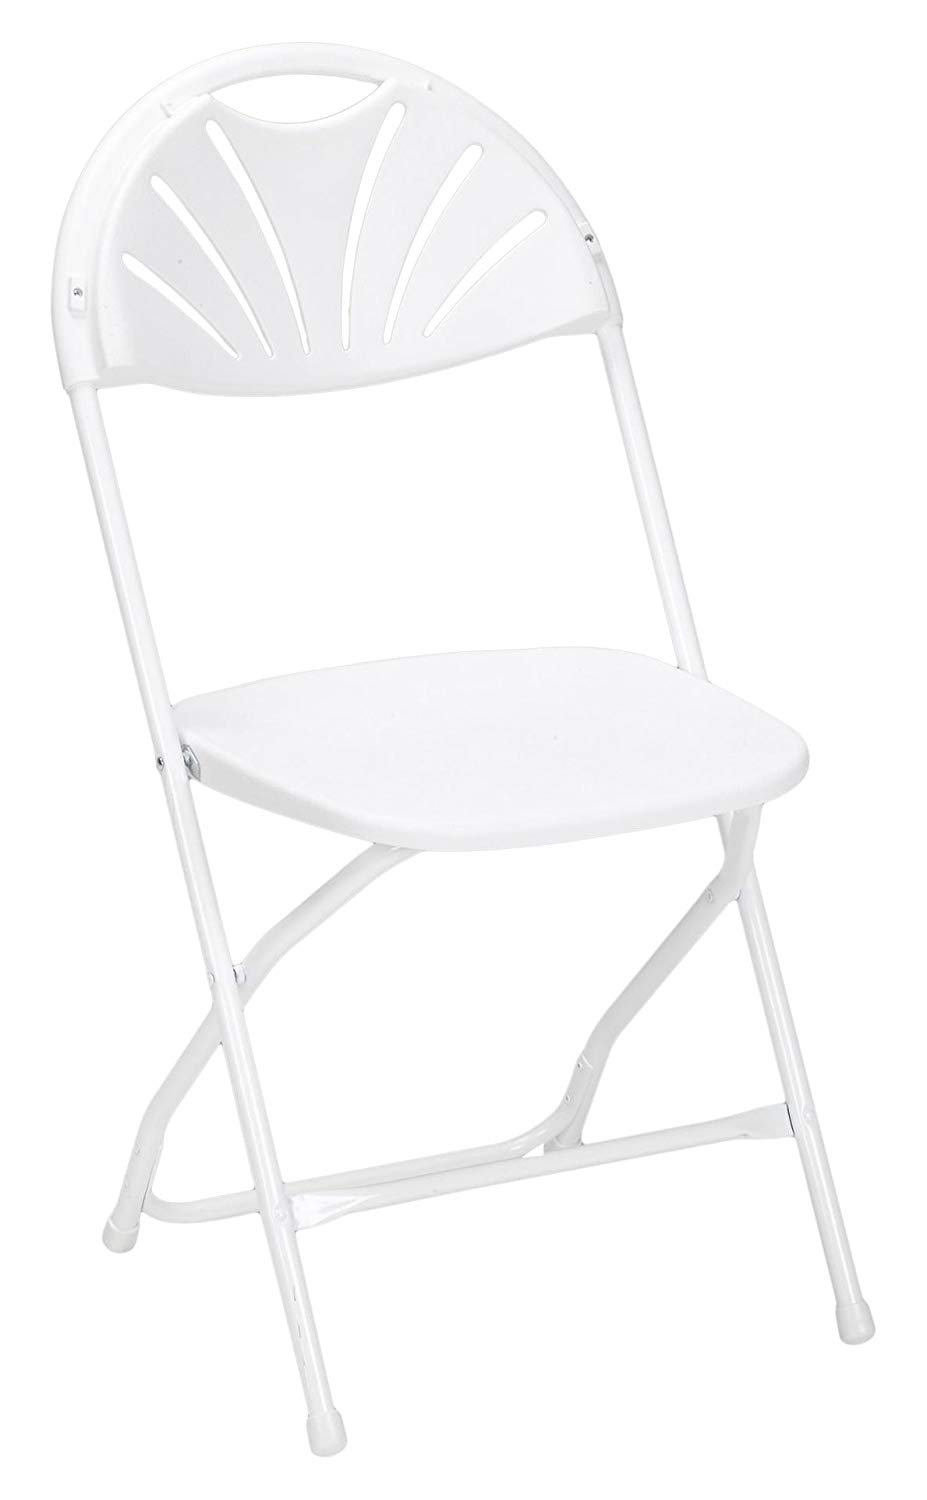 Chair Rentals Available In New York Ny